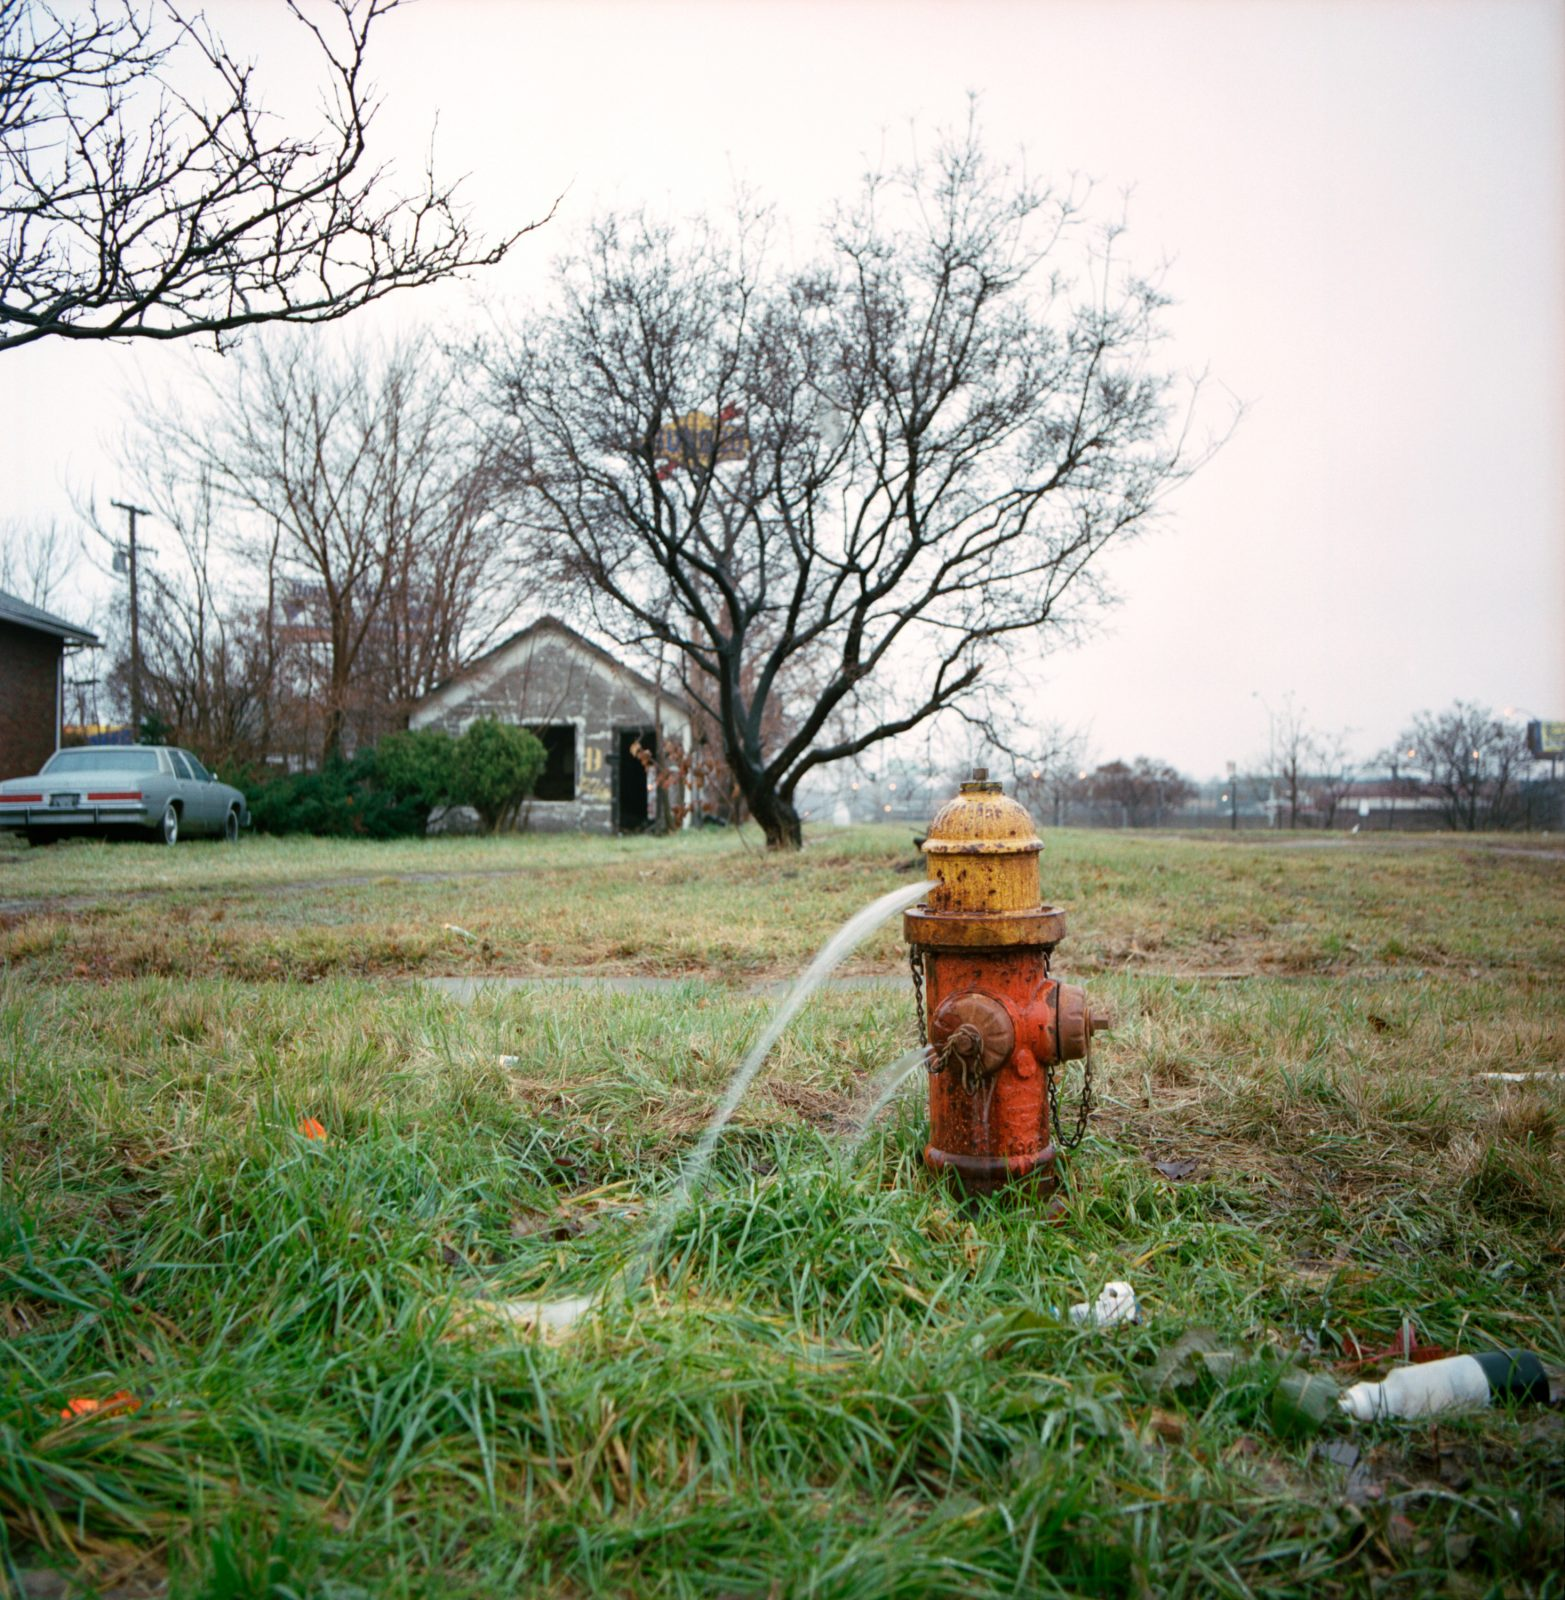 Leaky fire hydrant. Detroit, Michigan.